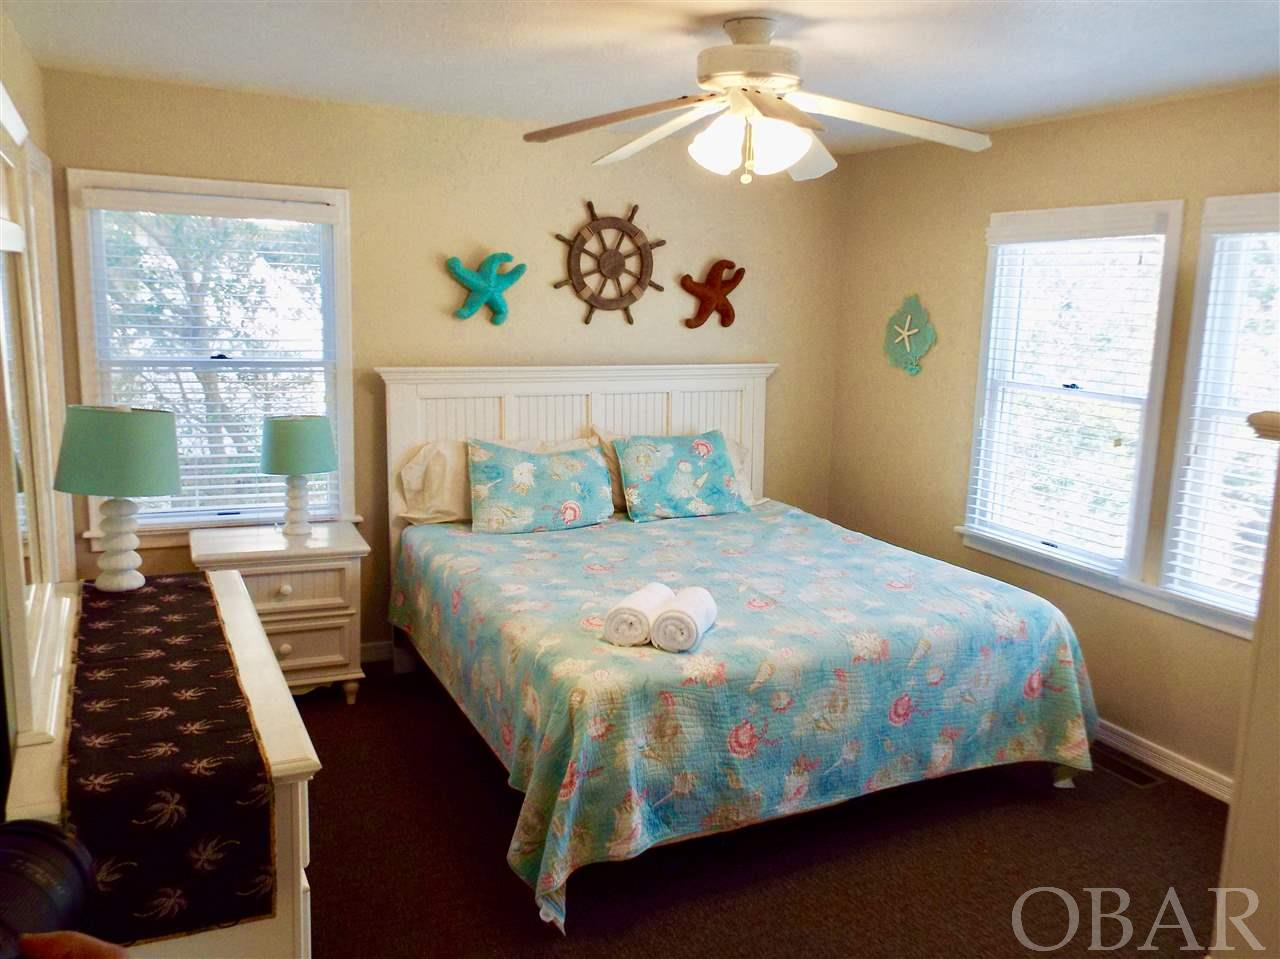 631 Tern Court, Corolla, NC 27927, 7 Bedrooms Bedrooms, ,7 BathroomsBathrooms,Residential,For sale,Tern Court,103396